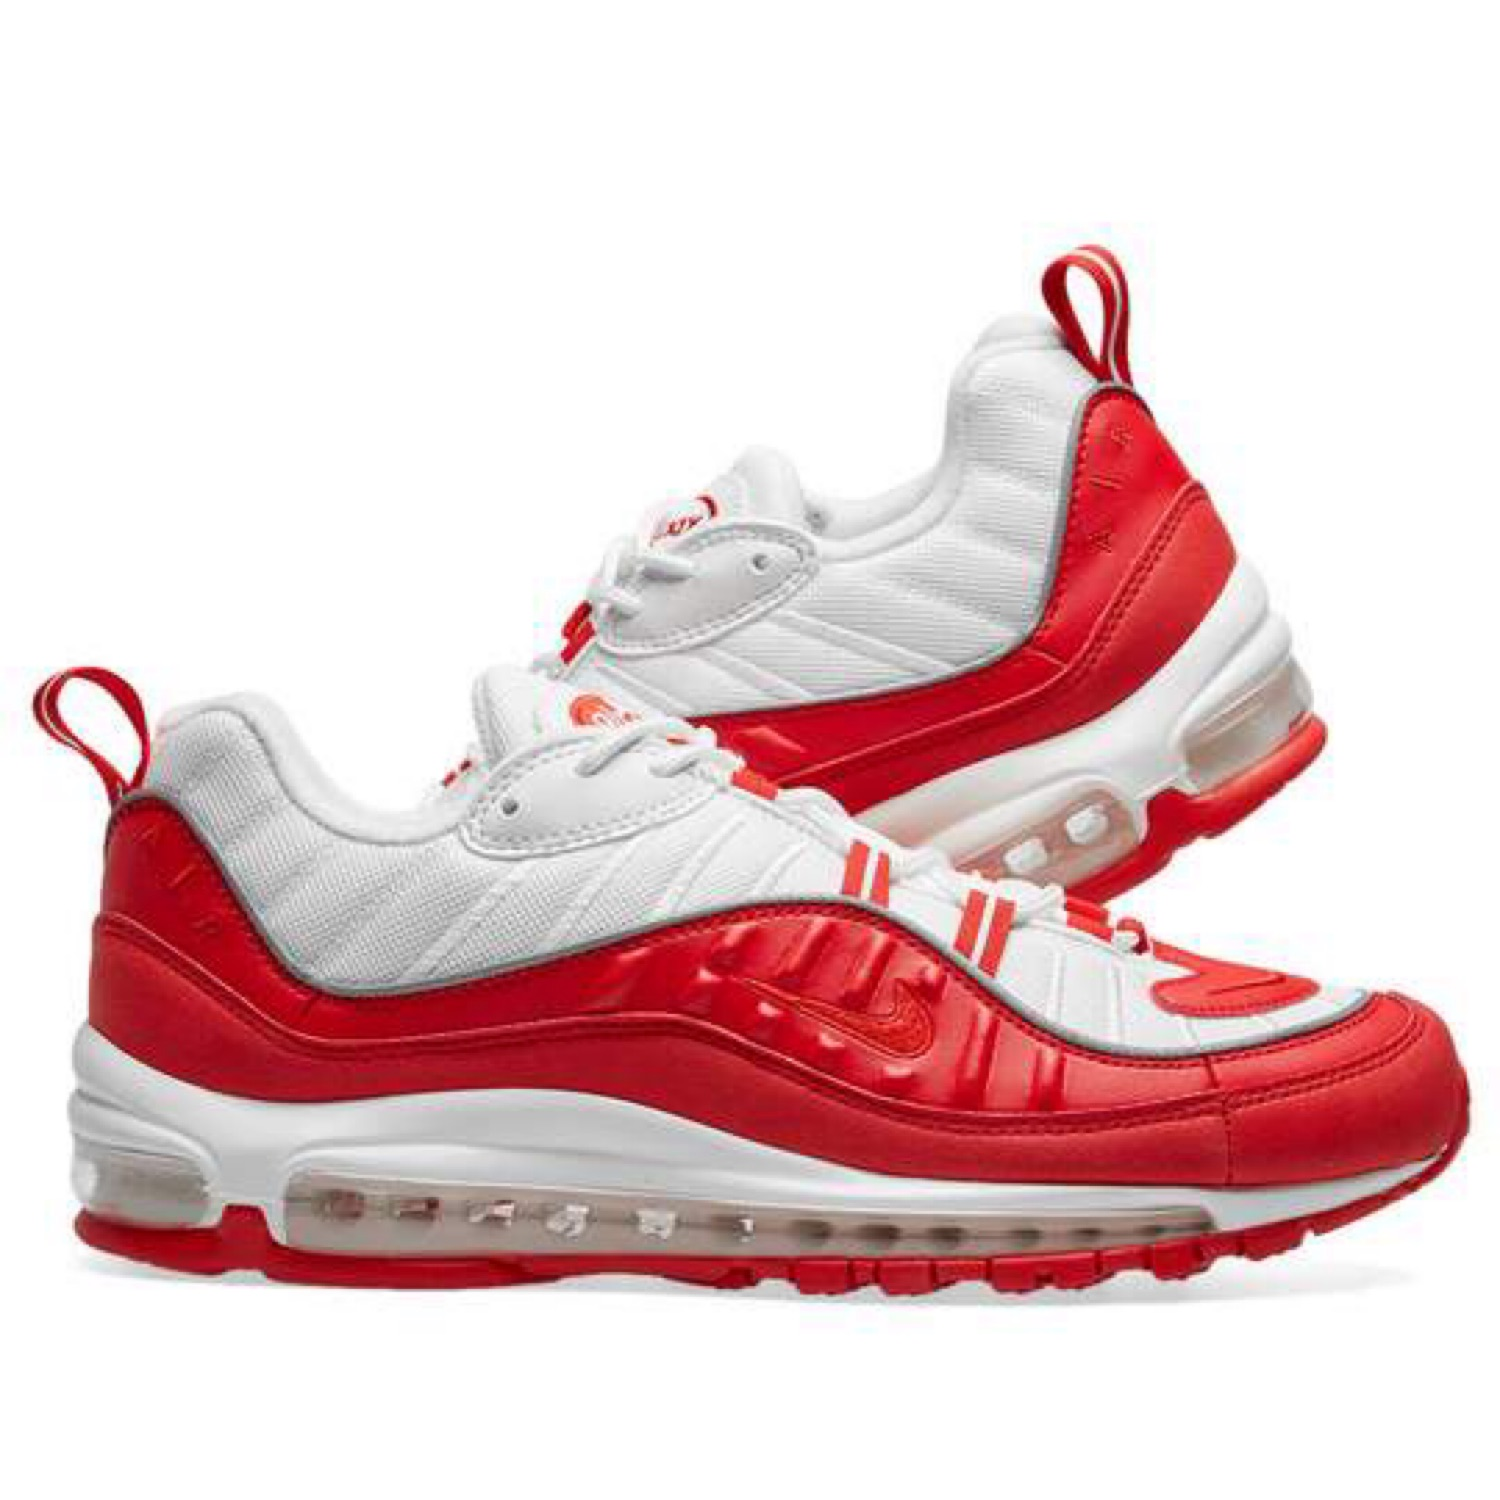 wholesale dealer 83490 75346 Nike Air Max 98 University Red